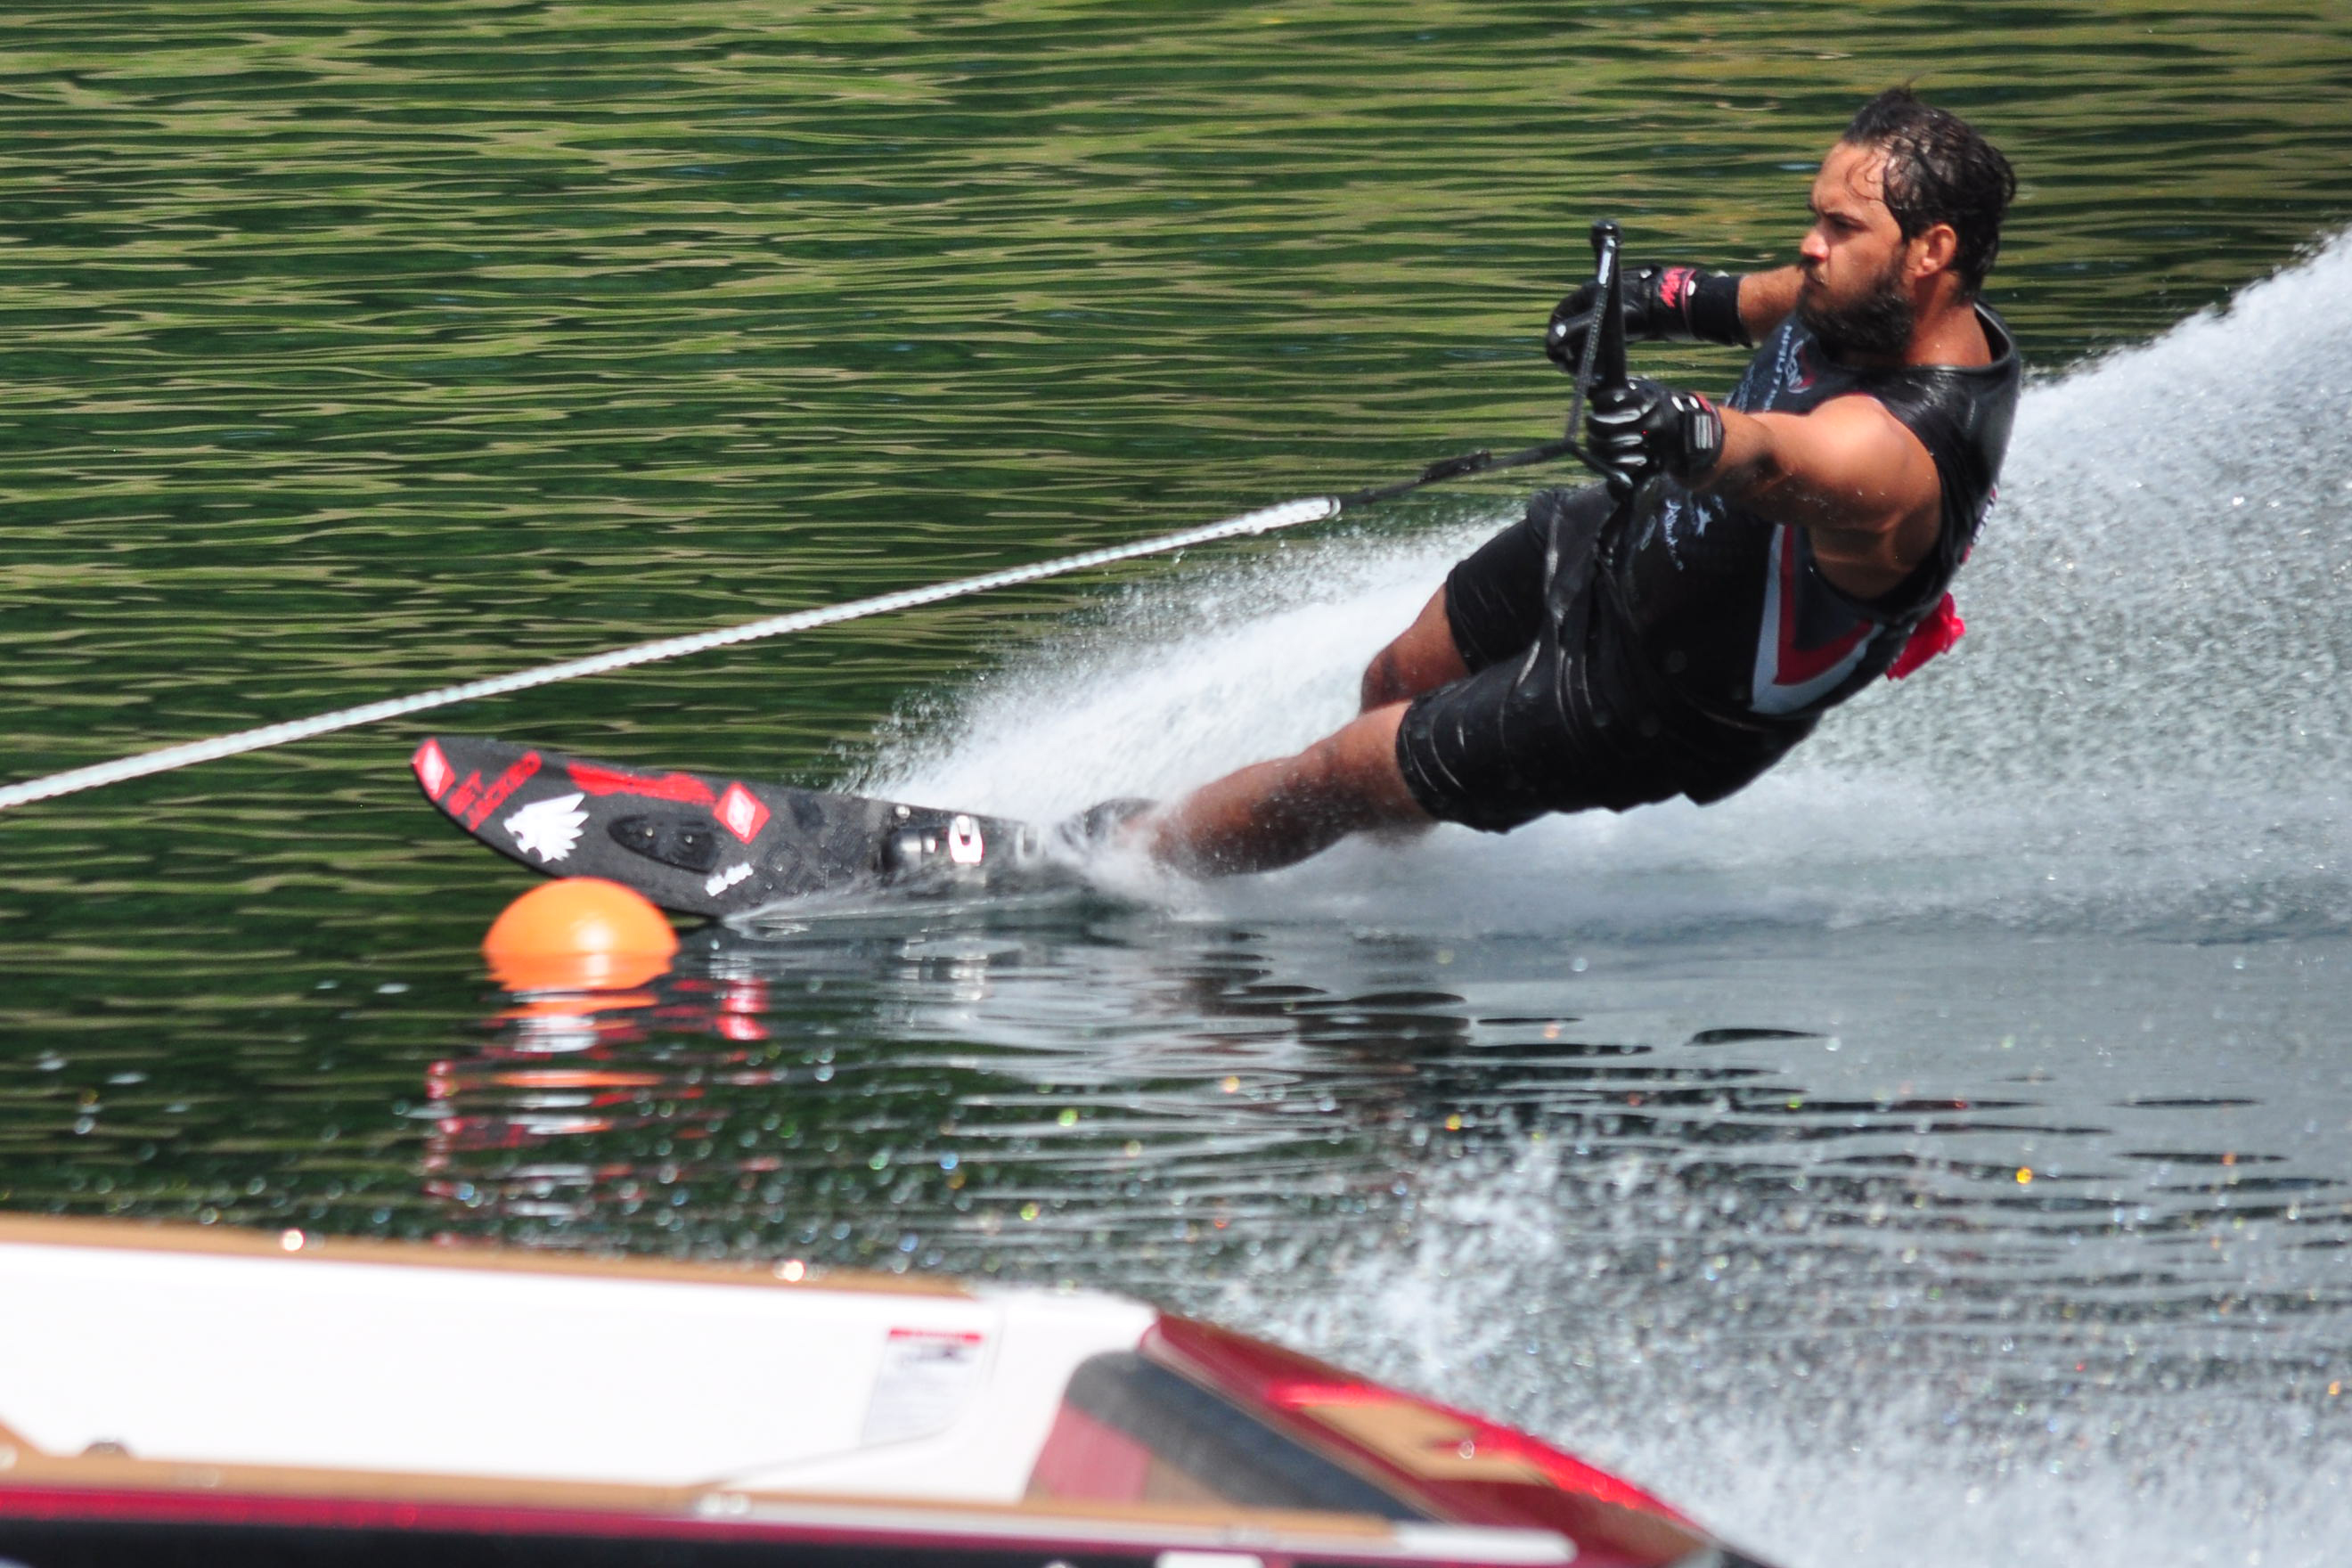 Jon Travers ran 2@41/36mph twice at the Canadian Waterski Open to take 3rd place